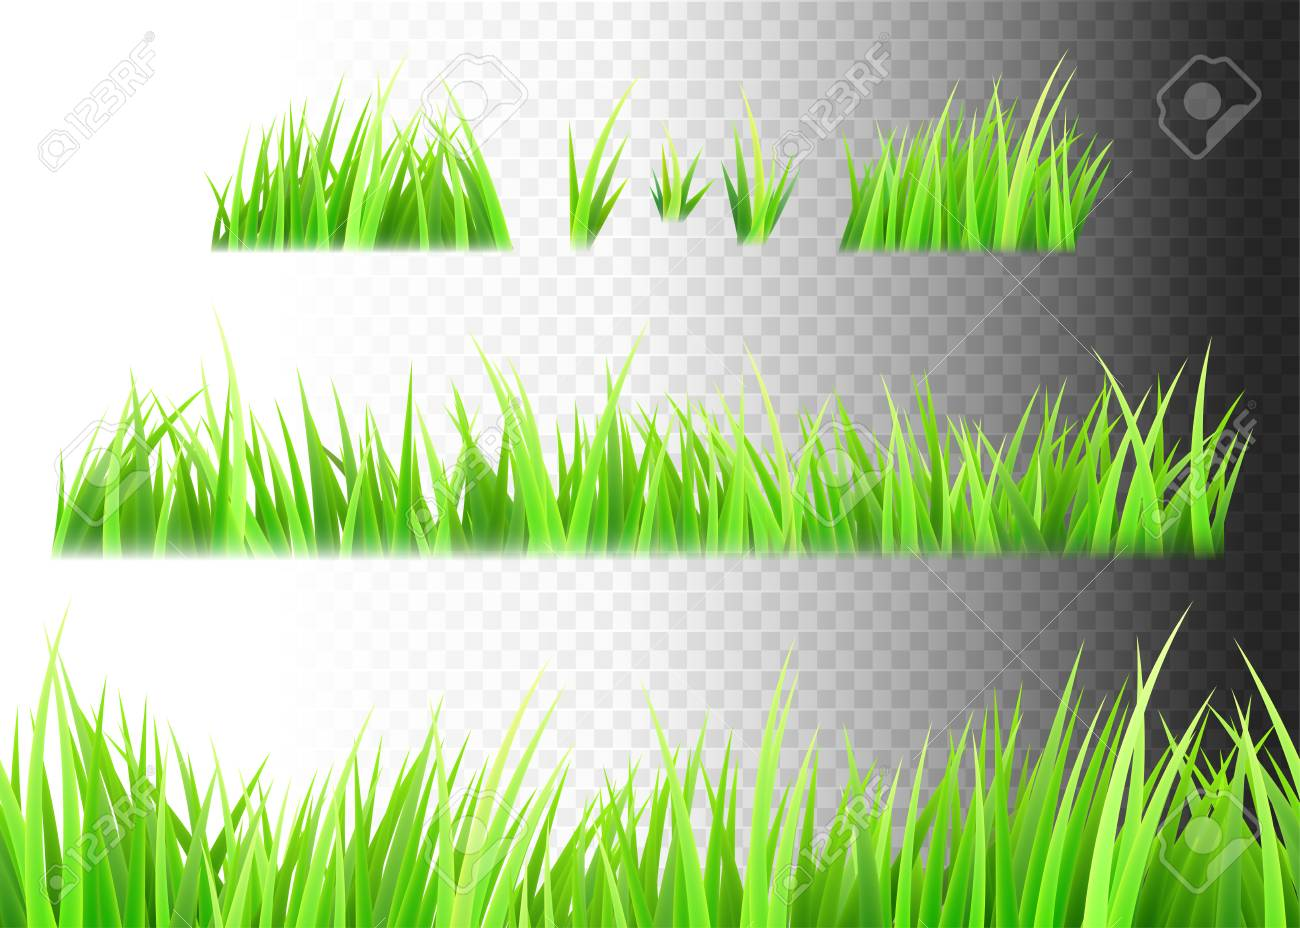 grass vector isolated on white black and transparent background royalty free cliparts vectors and stock illustration image 95323780 grass vector isolated on white black and transparent background